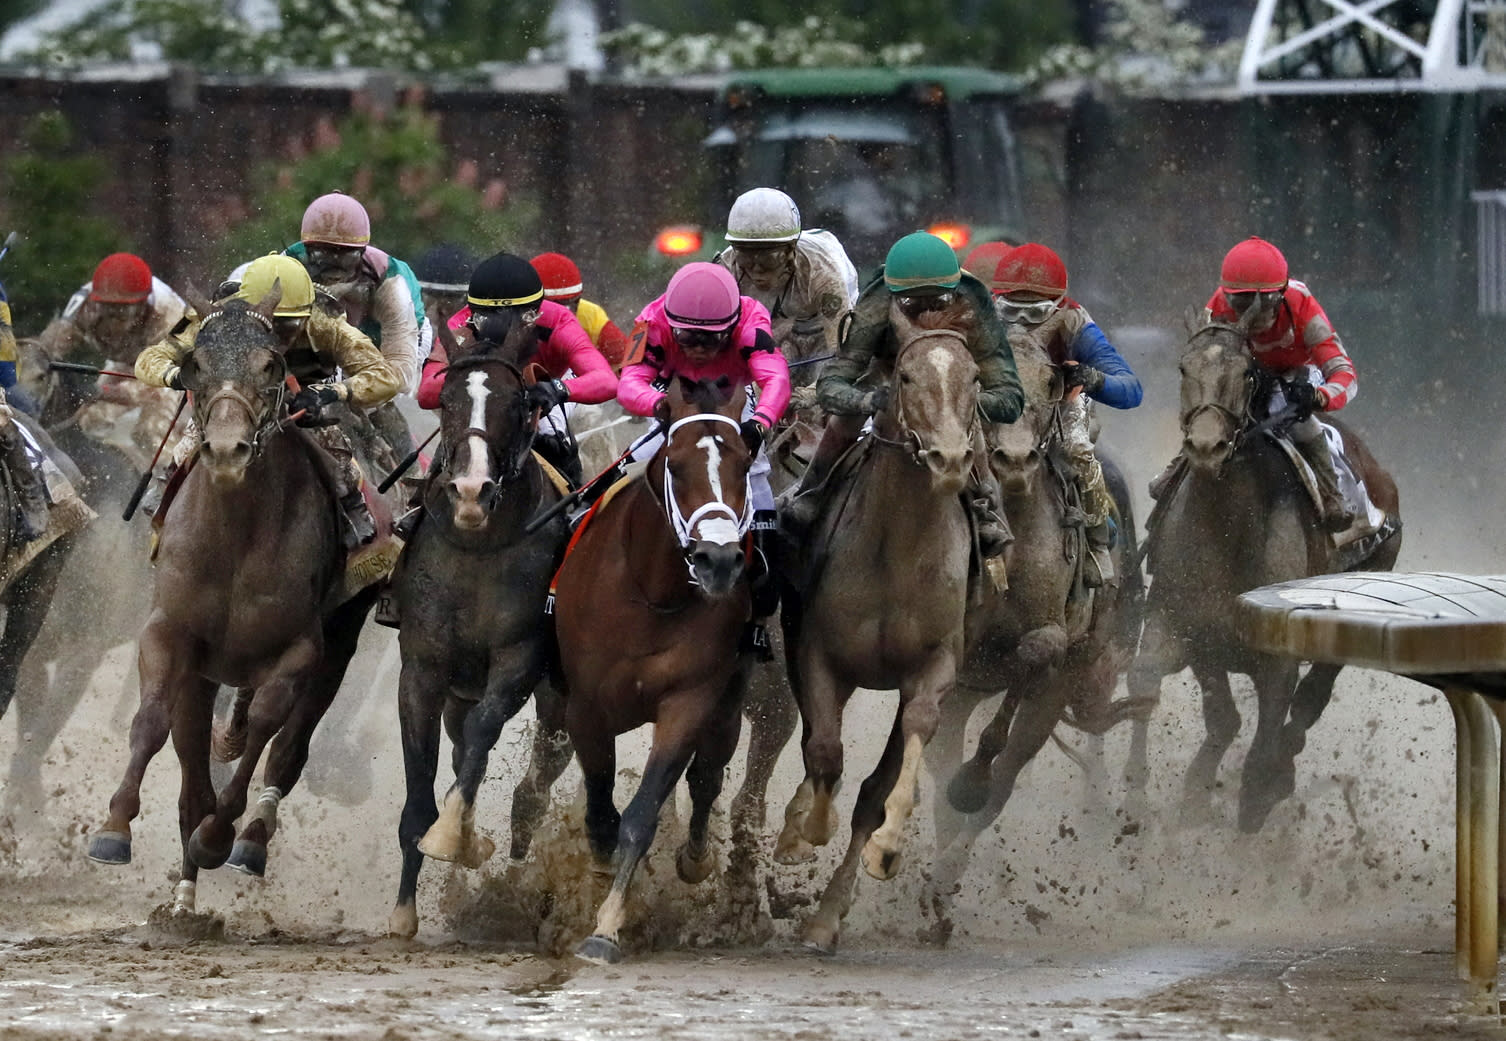 In this Saturday, May 4, 2019, file photo, from left, Country House, ridden by Flavien Prat, War of Will, ridden by Tyler Gaffalione, Maximum Security, ridden by Luis Saez, and Code of Honor, ridden by John Velazquez, round the far turn during the 145th running of the Kentucky Derby horse race at Churchill Downs in Louisville, Ky. If not for the quick reaction of jockey Tyler Gaffalione and his horse, War of Will, when Maximum Security drifted over in the final turn in sloppy conditions, it could have be been a catastrophe. (AP Photo/John Minchillo, File)